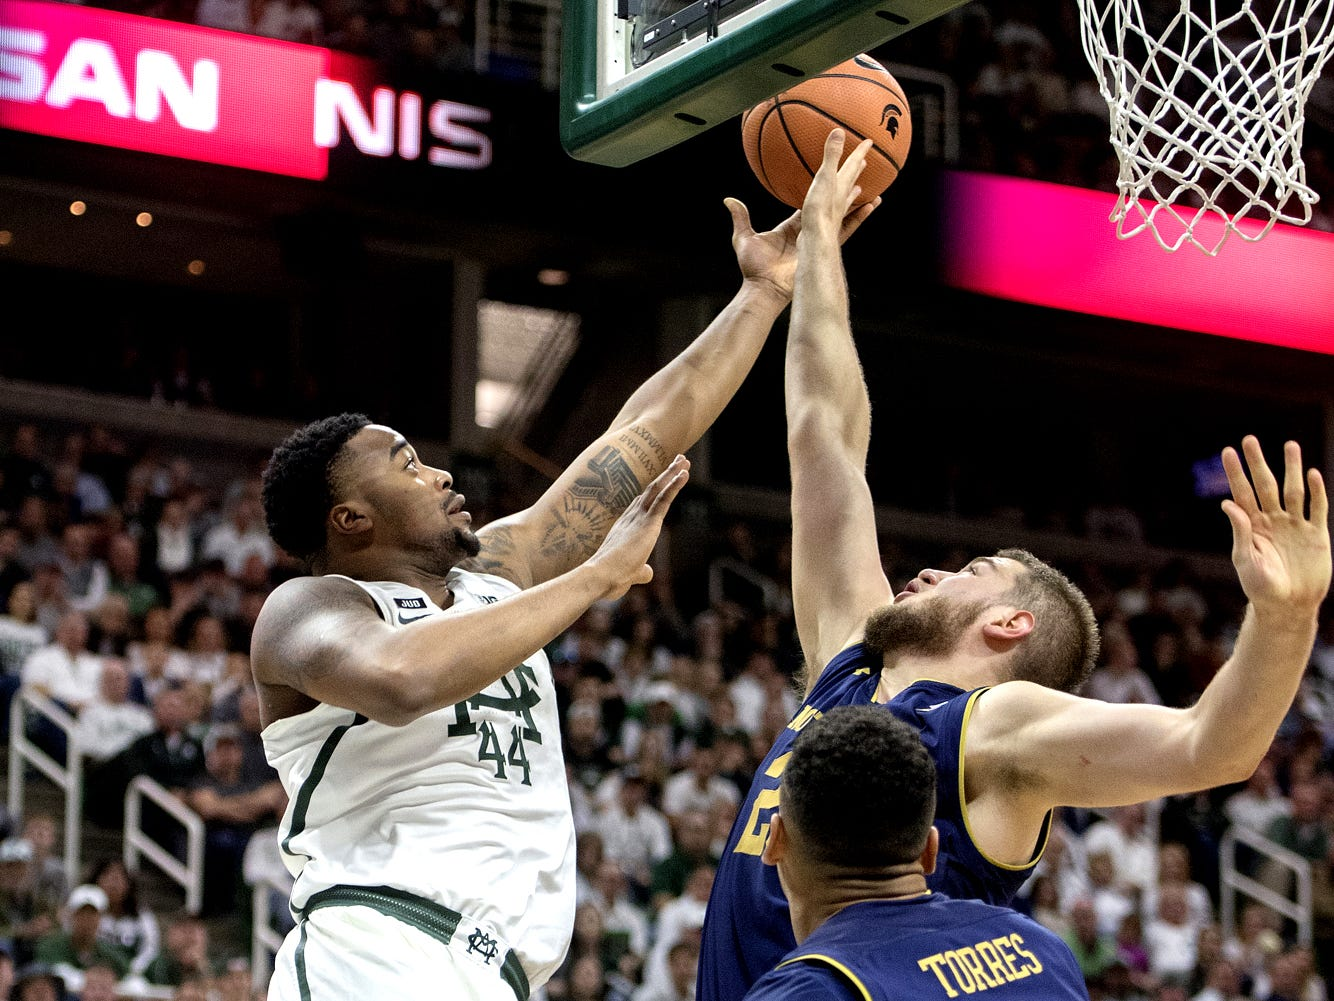 Michigan State's Nick Ward, left, shoots as Notre Dame's Martinas Geben defends during the second half on Thursday, Nov. 30, 2017, at the Breslin Center. The Spartans beat Notre Dame 81-63.